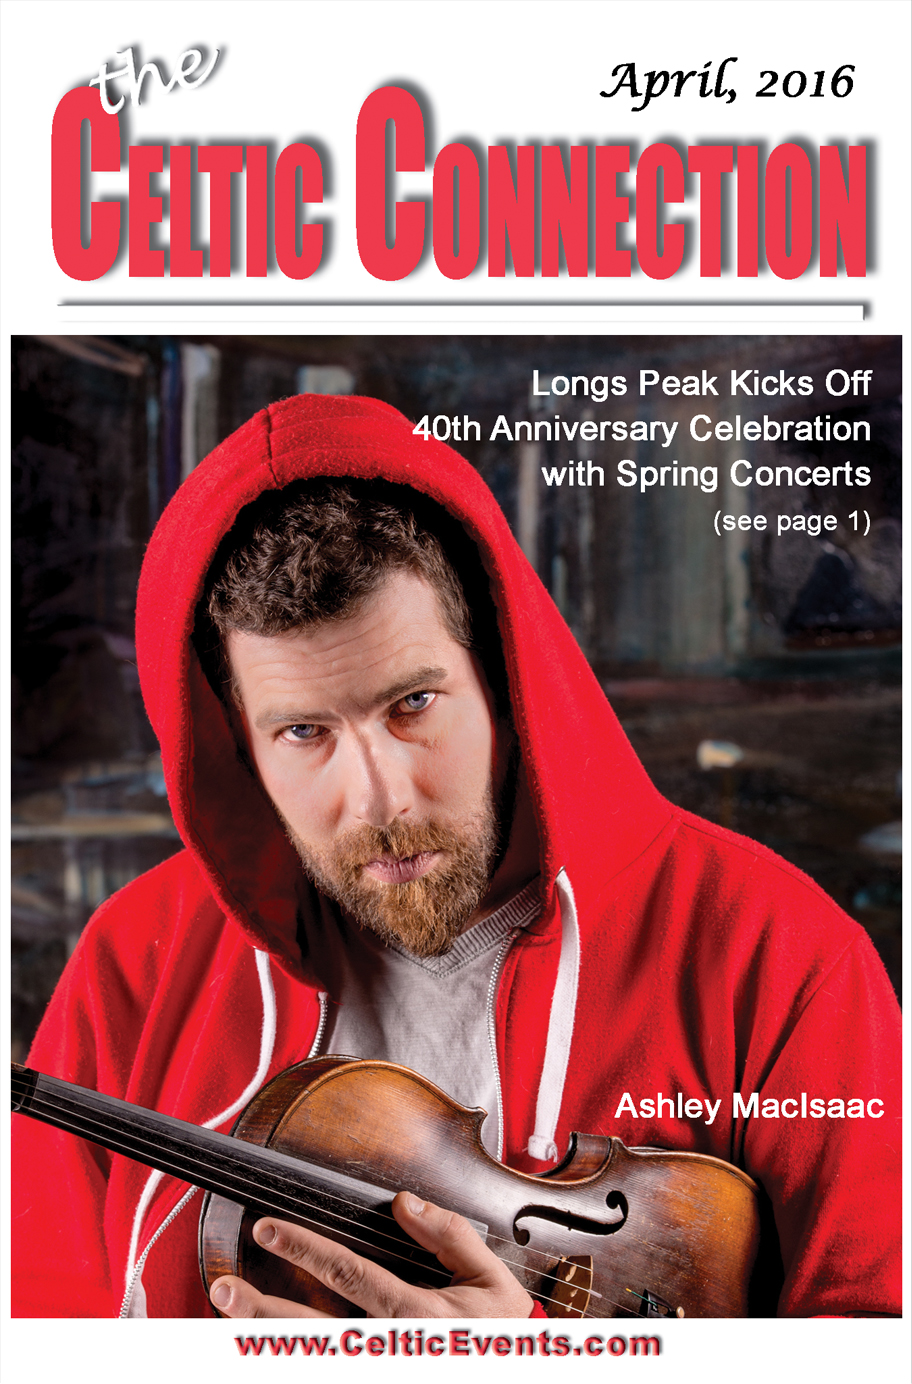 Longs Peak Scottish-Irish Highland Festival Celebrating 40th Year with Ashley MacIsaac, Young Dubliners, The Tannahill Weavers, and friends with April 23 Spring Concert!